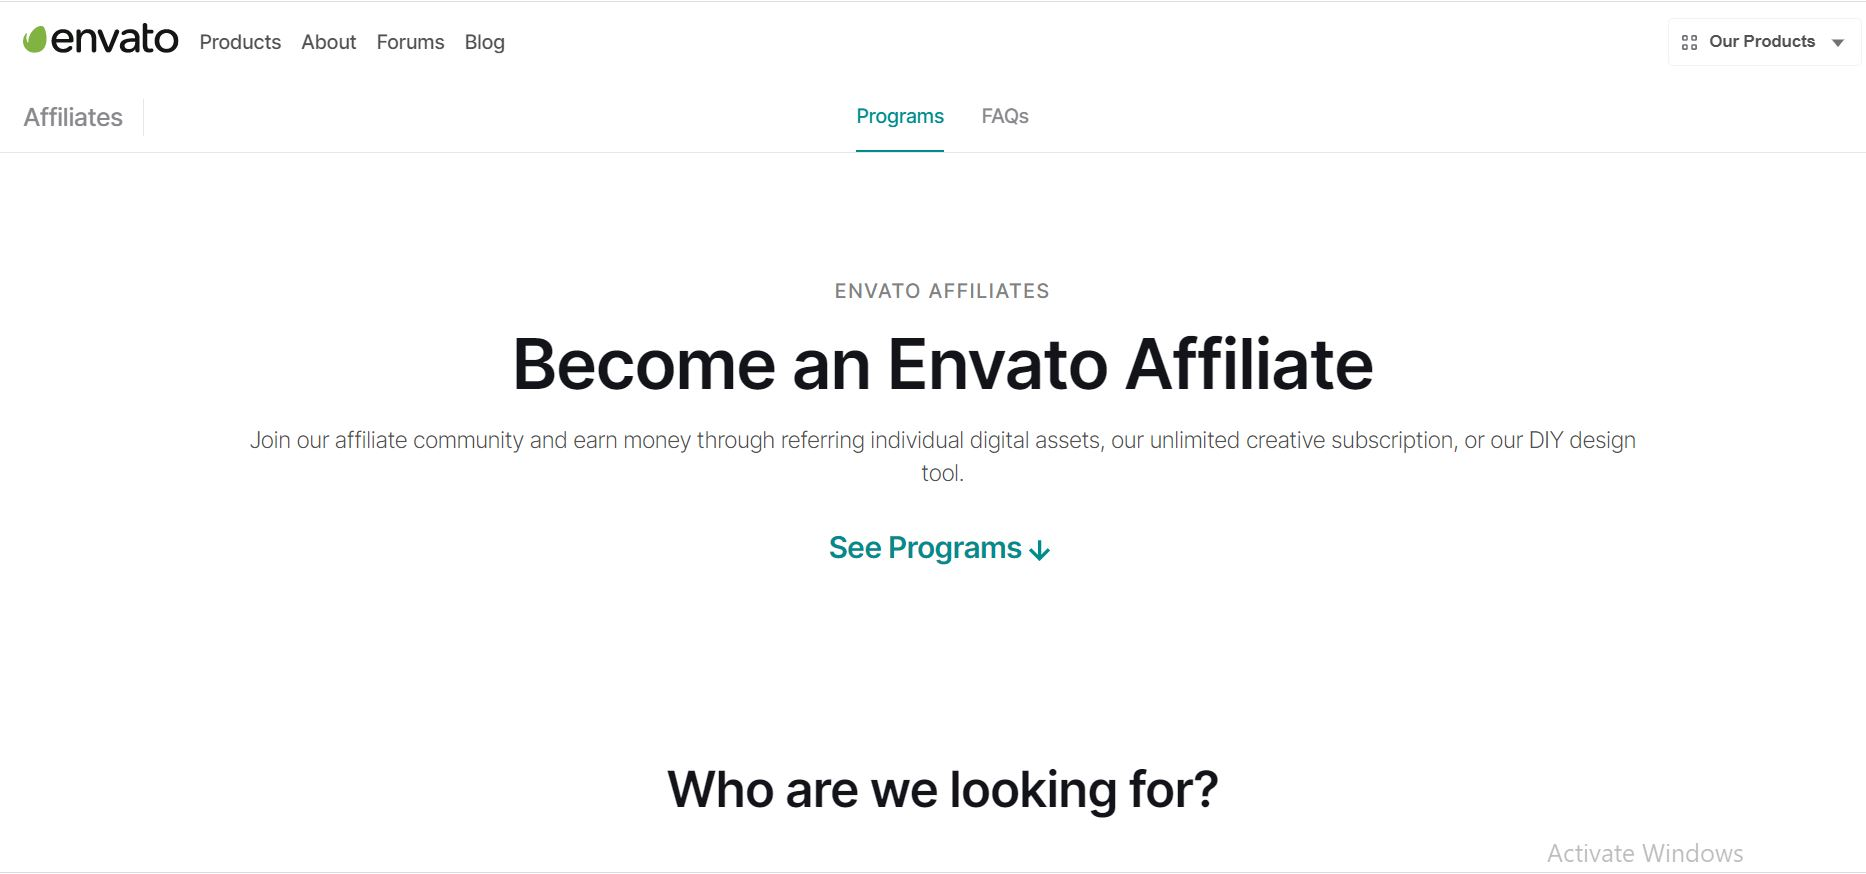 Get Started with Envato Affiliate Program